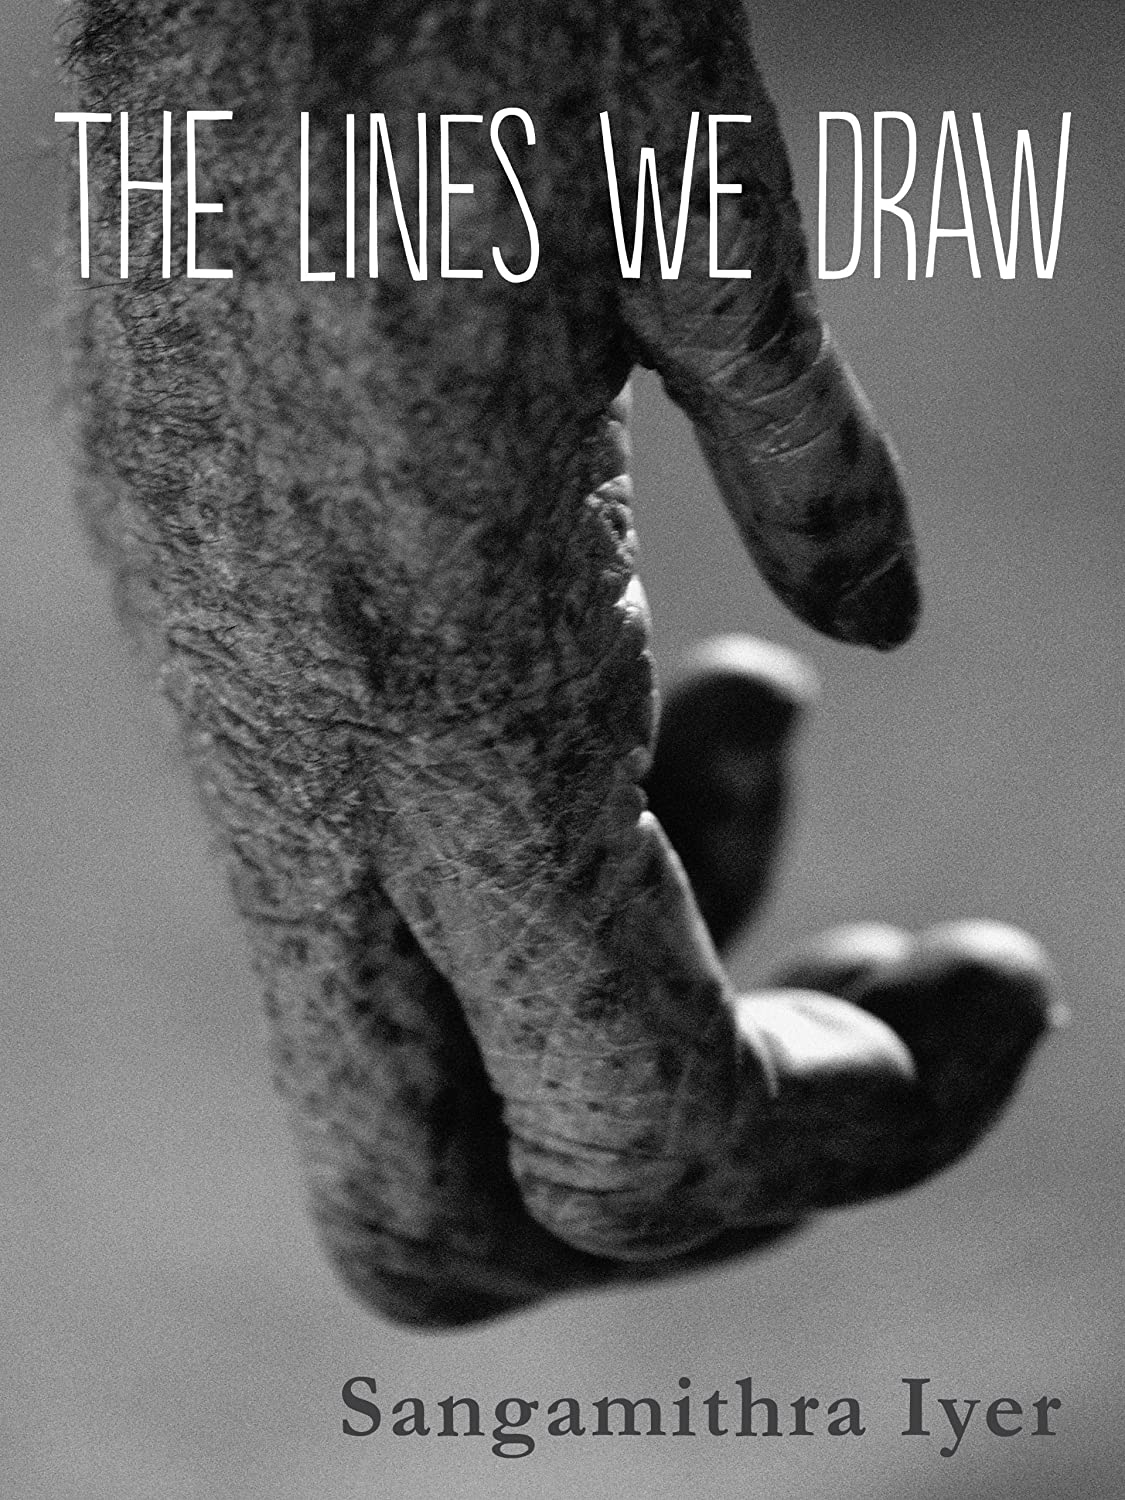 """I Am Beyond Excited To Announce That My Longform Nonfiction Narrative Story  €�the Lines We Draw"""" Has Been Published As A Short Ebook By Hen Press,"""